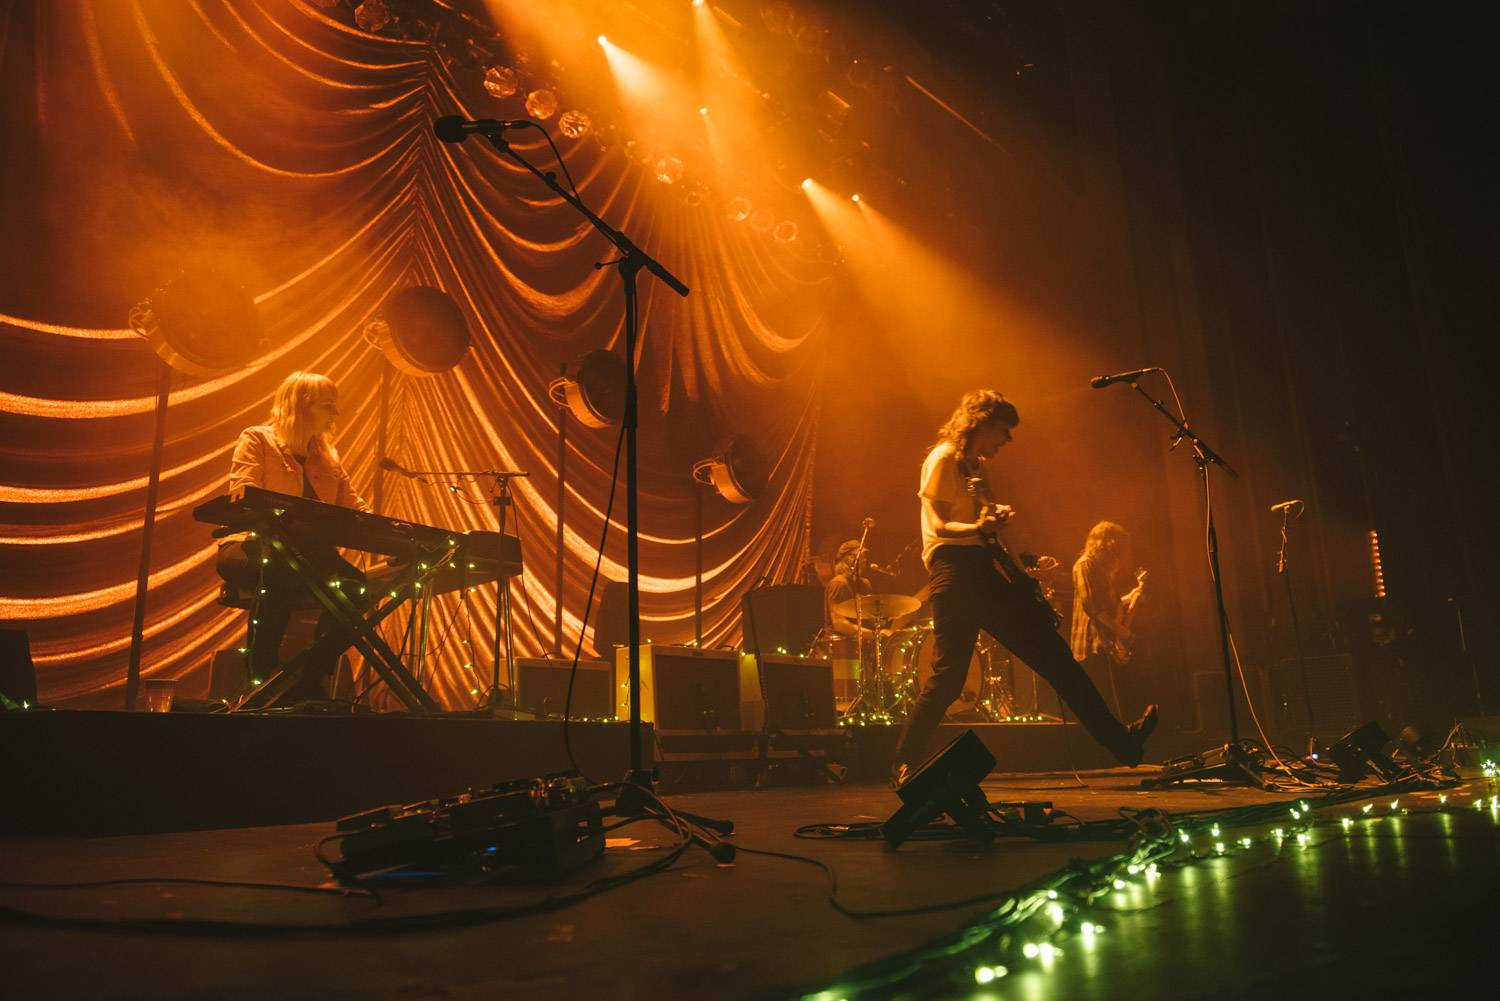 Courtney Barnett at the Vogue Theater, Vancouver, Oct 10 2018. Pavel Boiko photo.